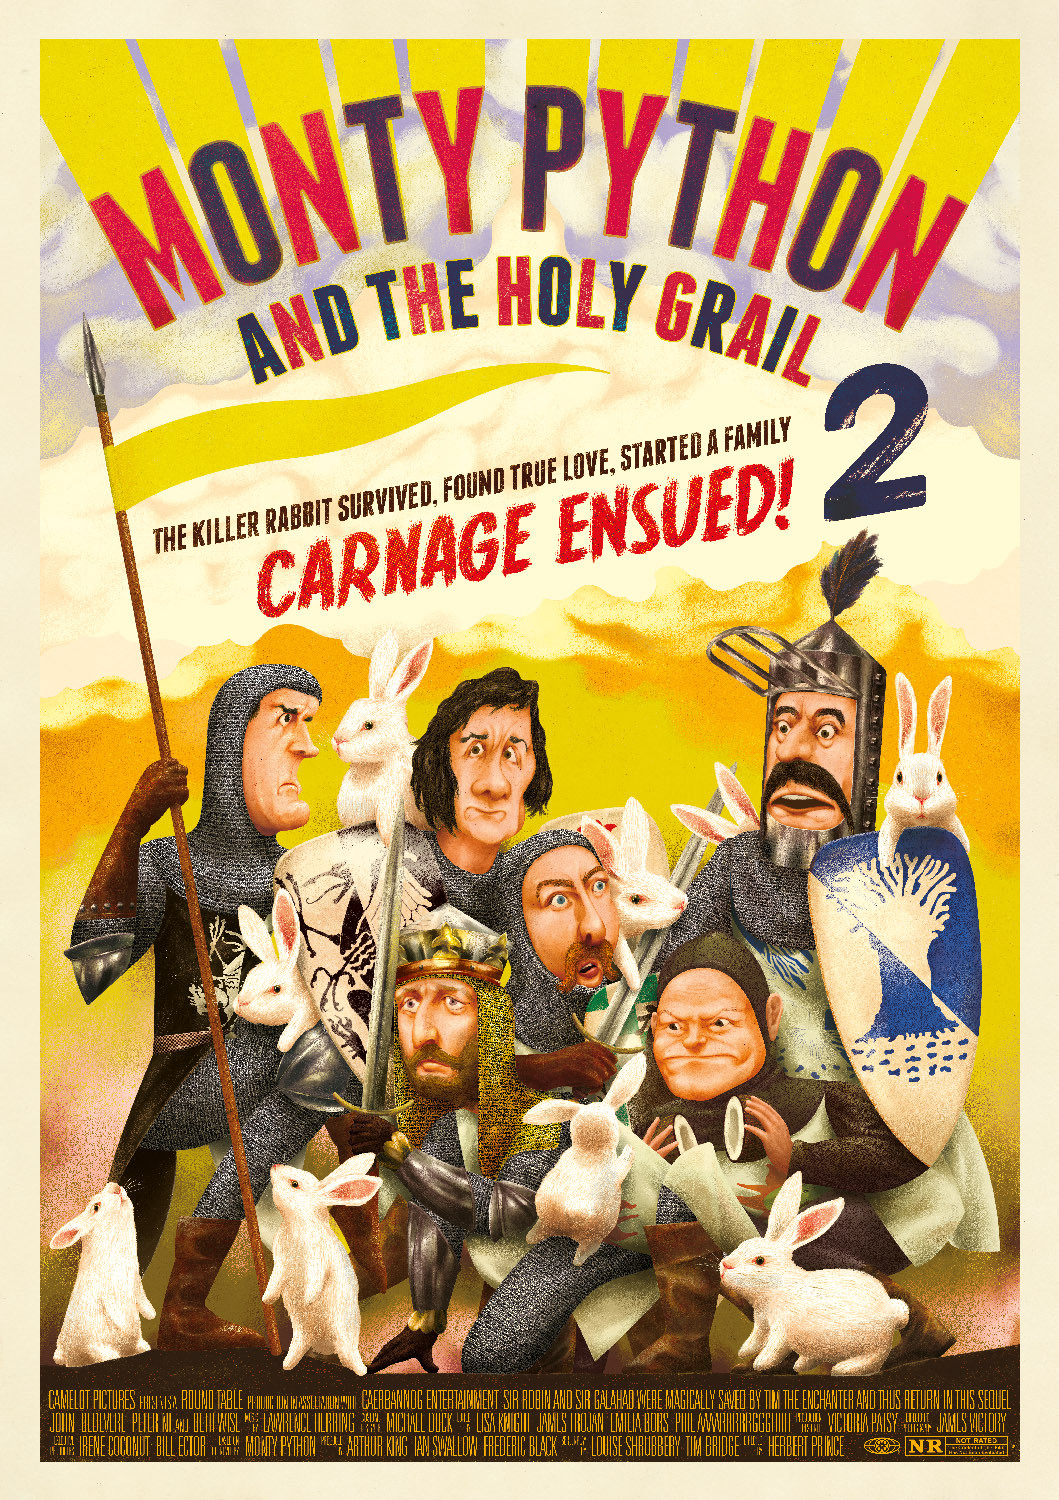 Nice Images Collection: Monty Python And The Holy Grail Desktop Wallpapers